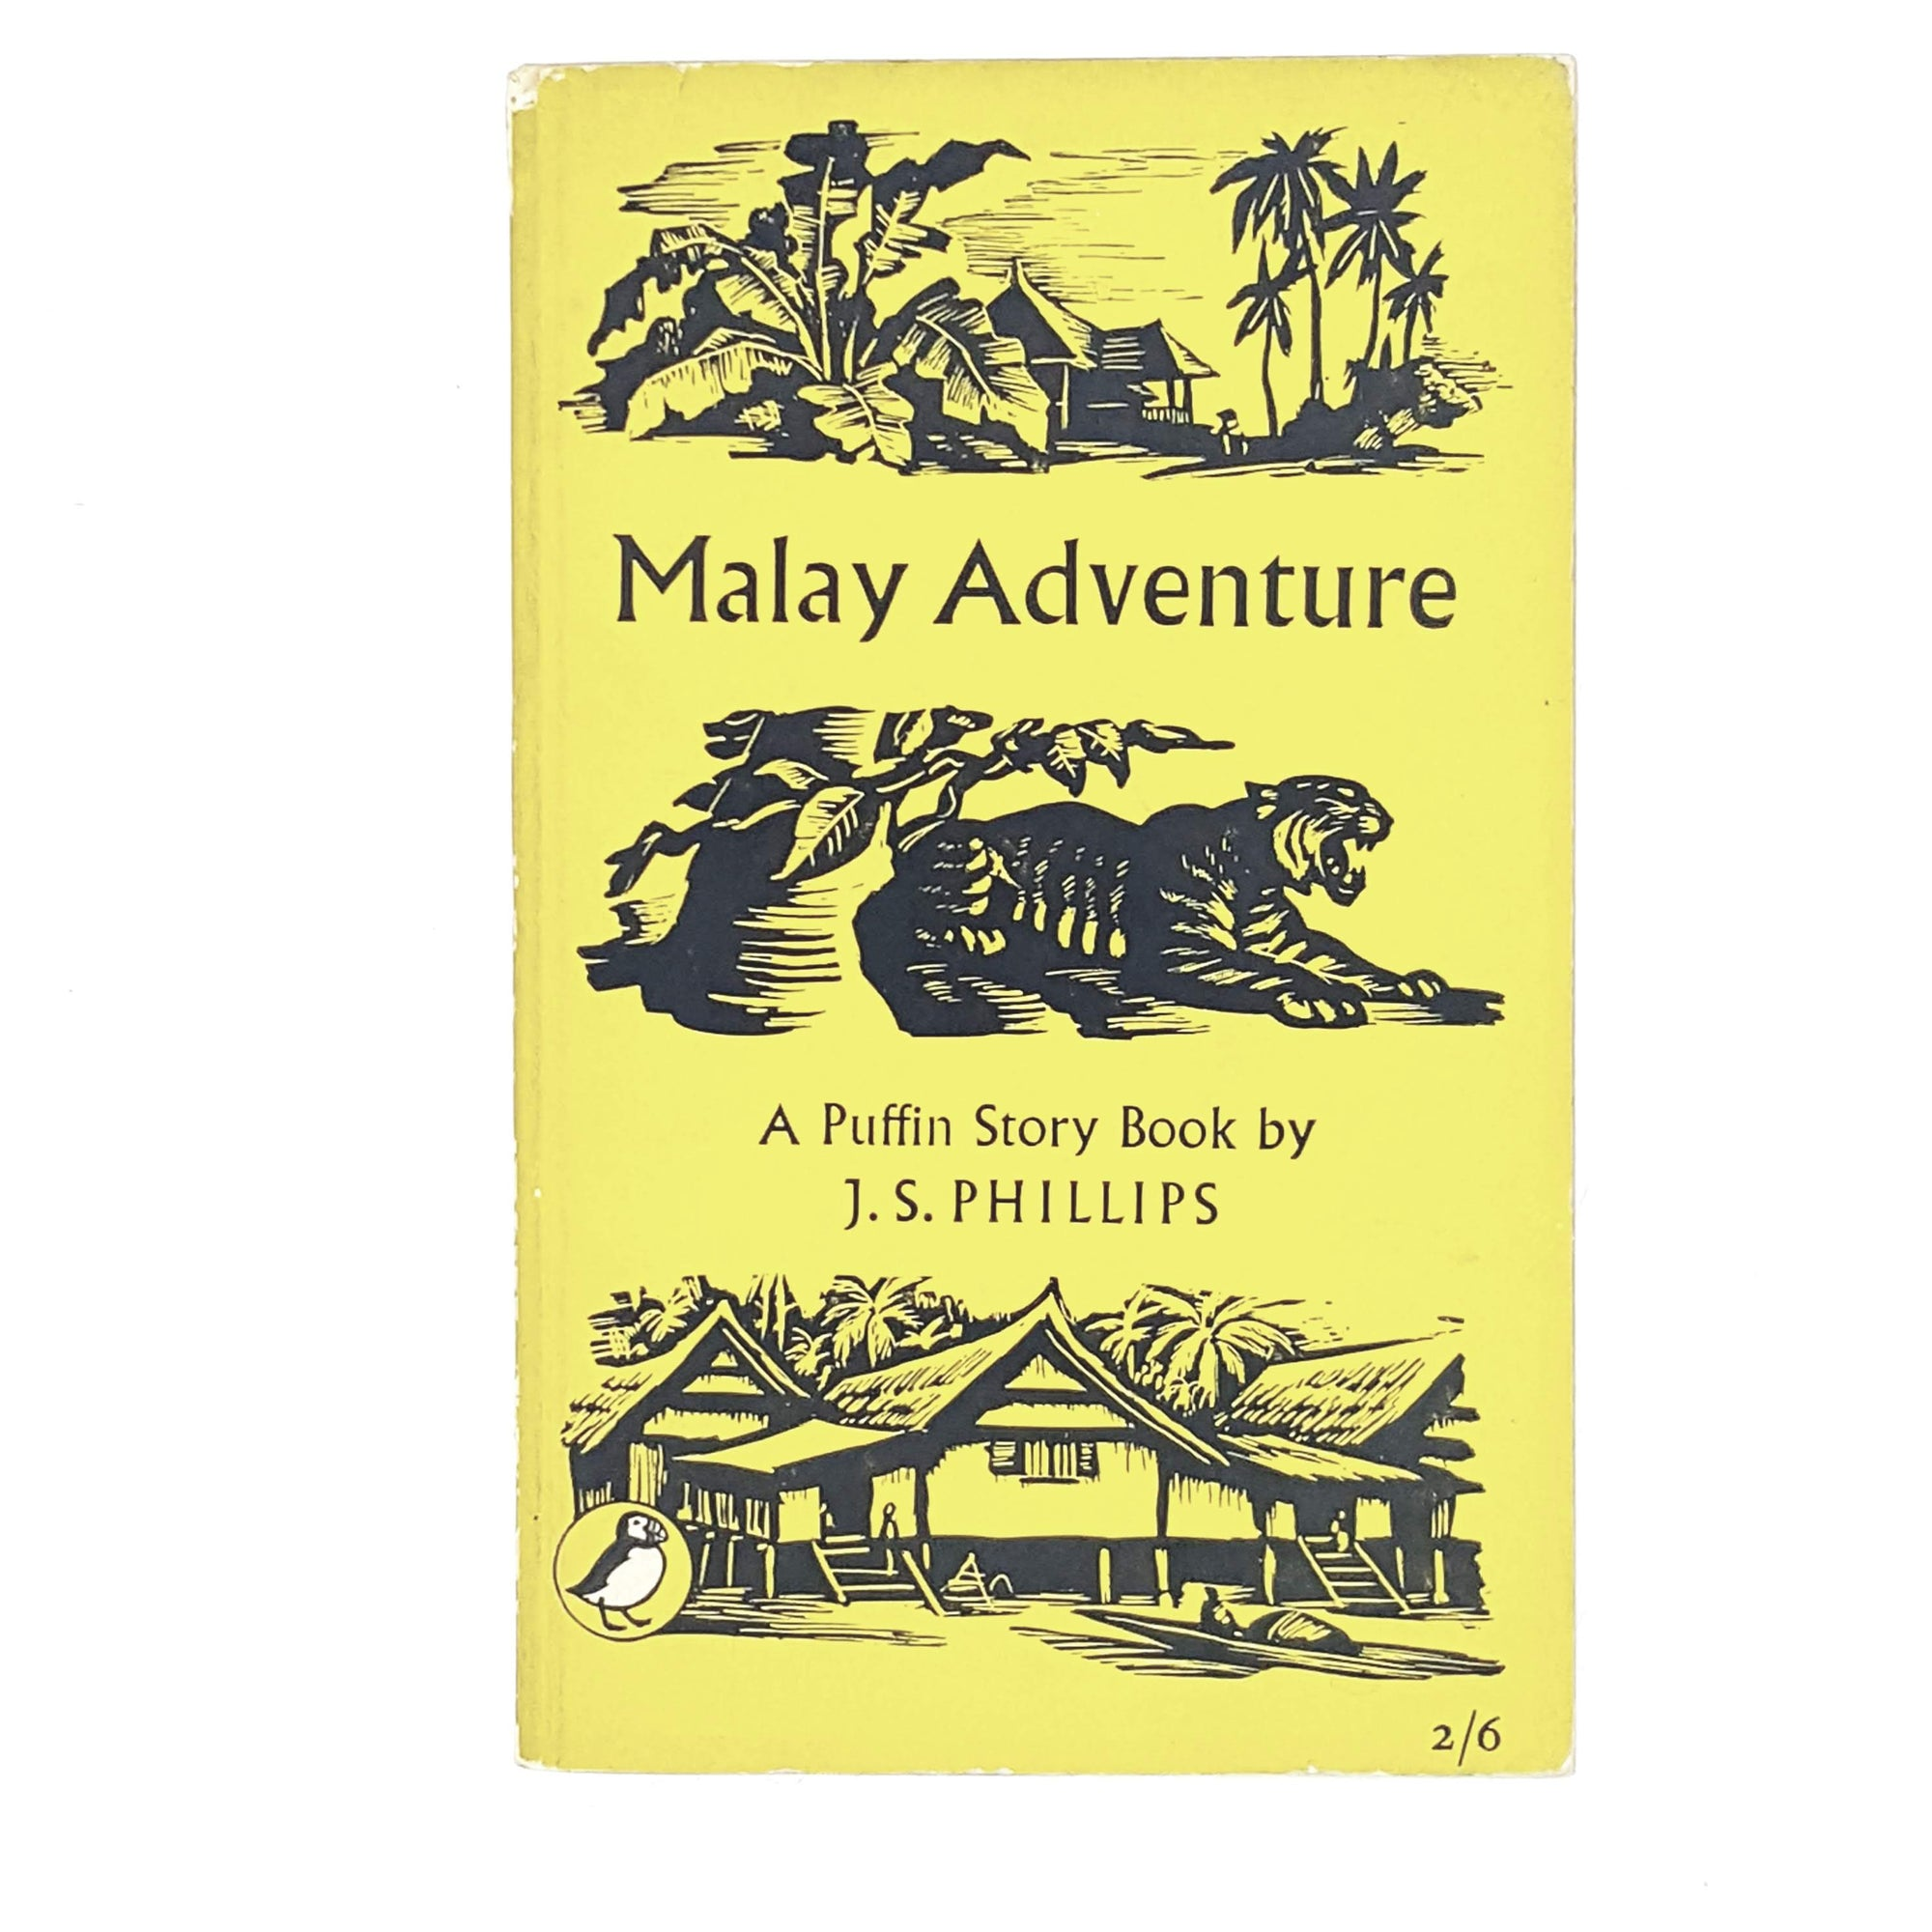 Vintage Puffin Malay Adventure by J. S. Phillips 1955